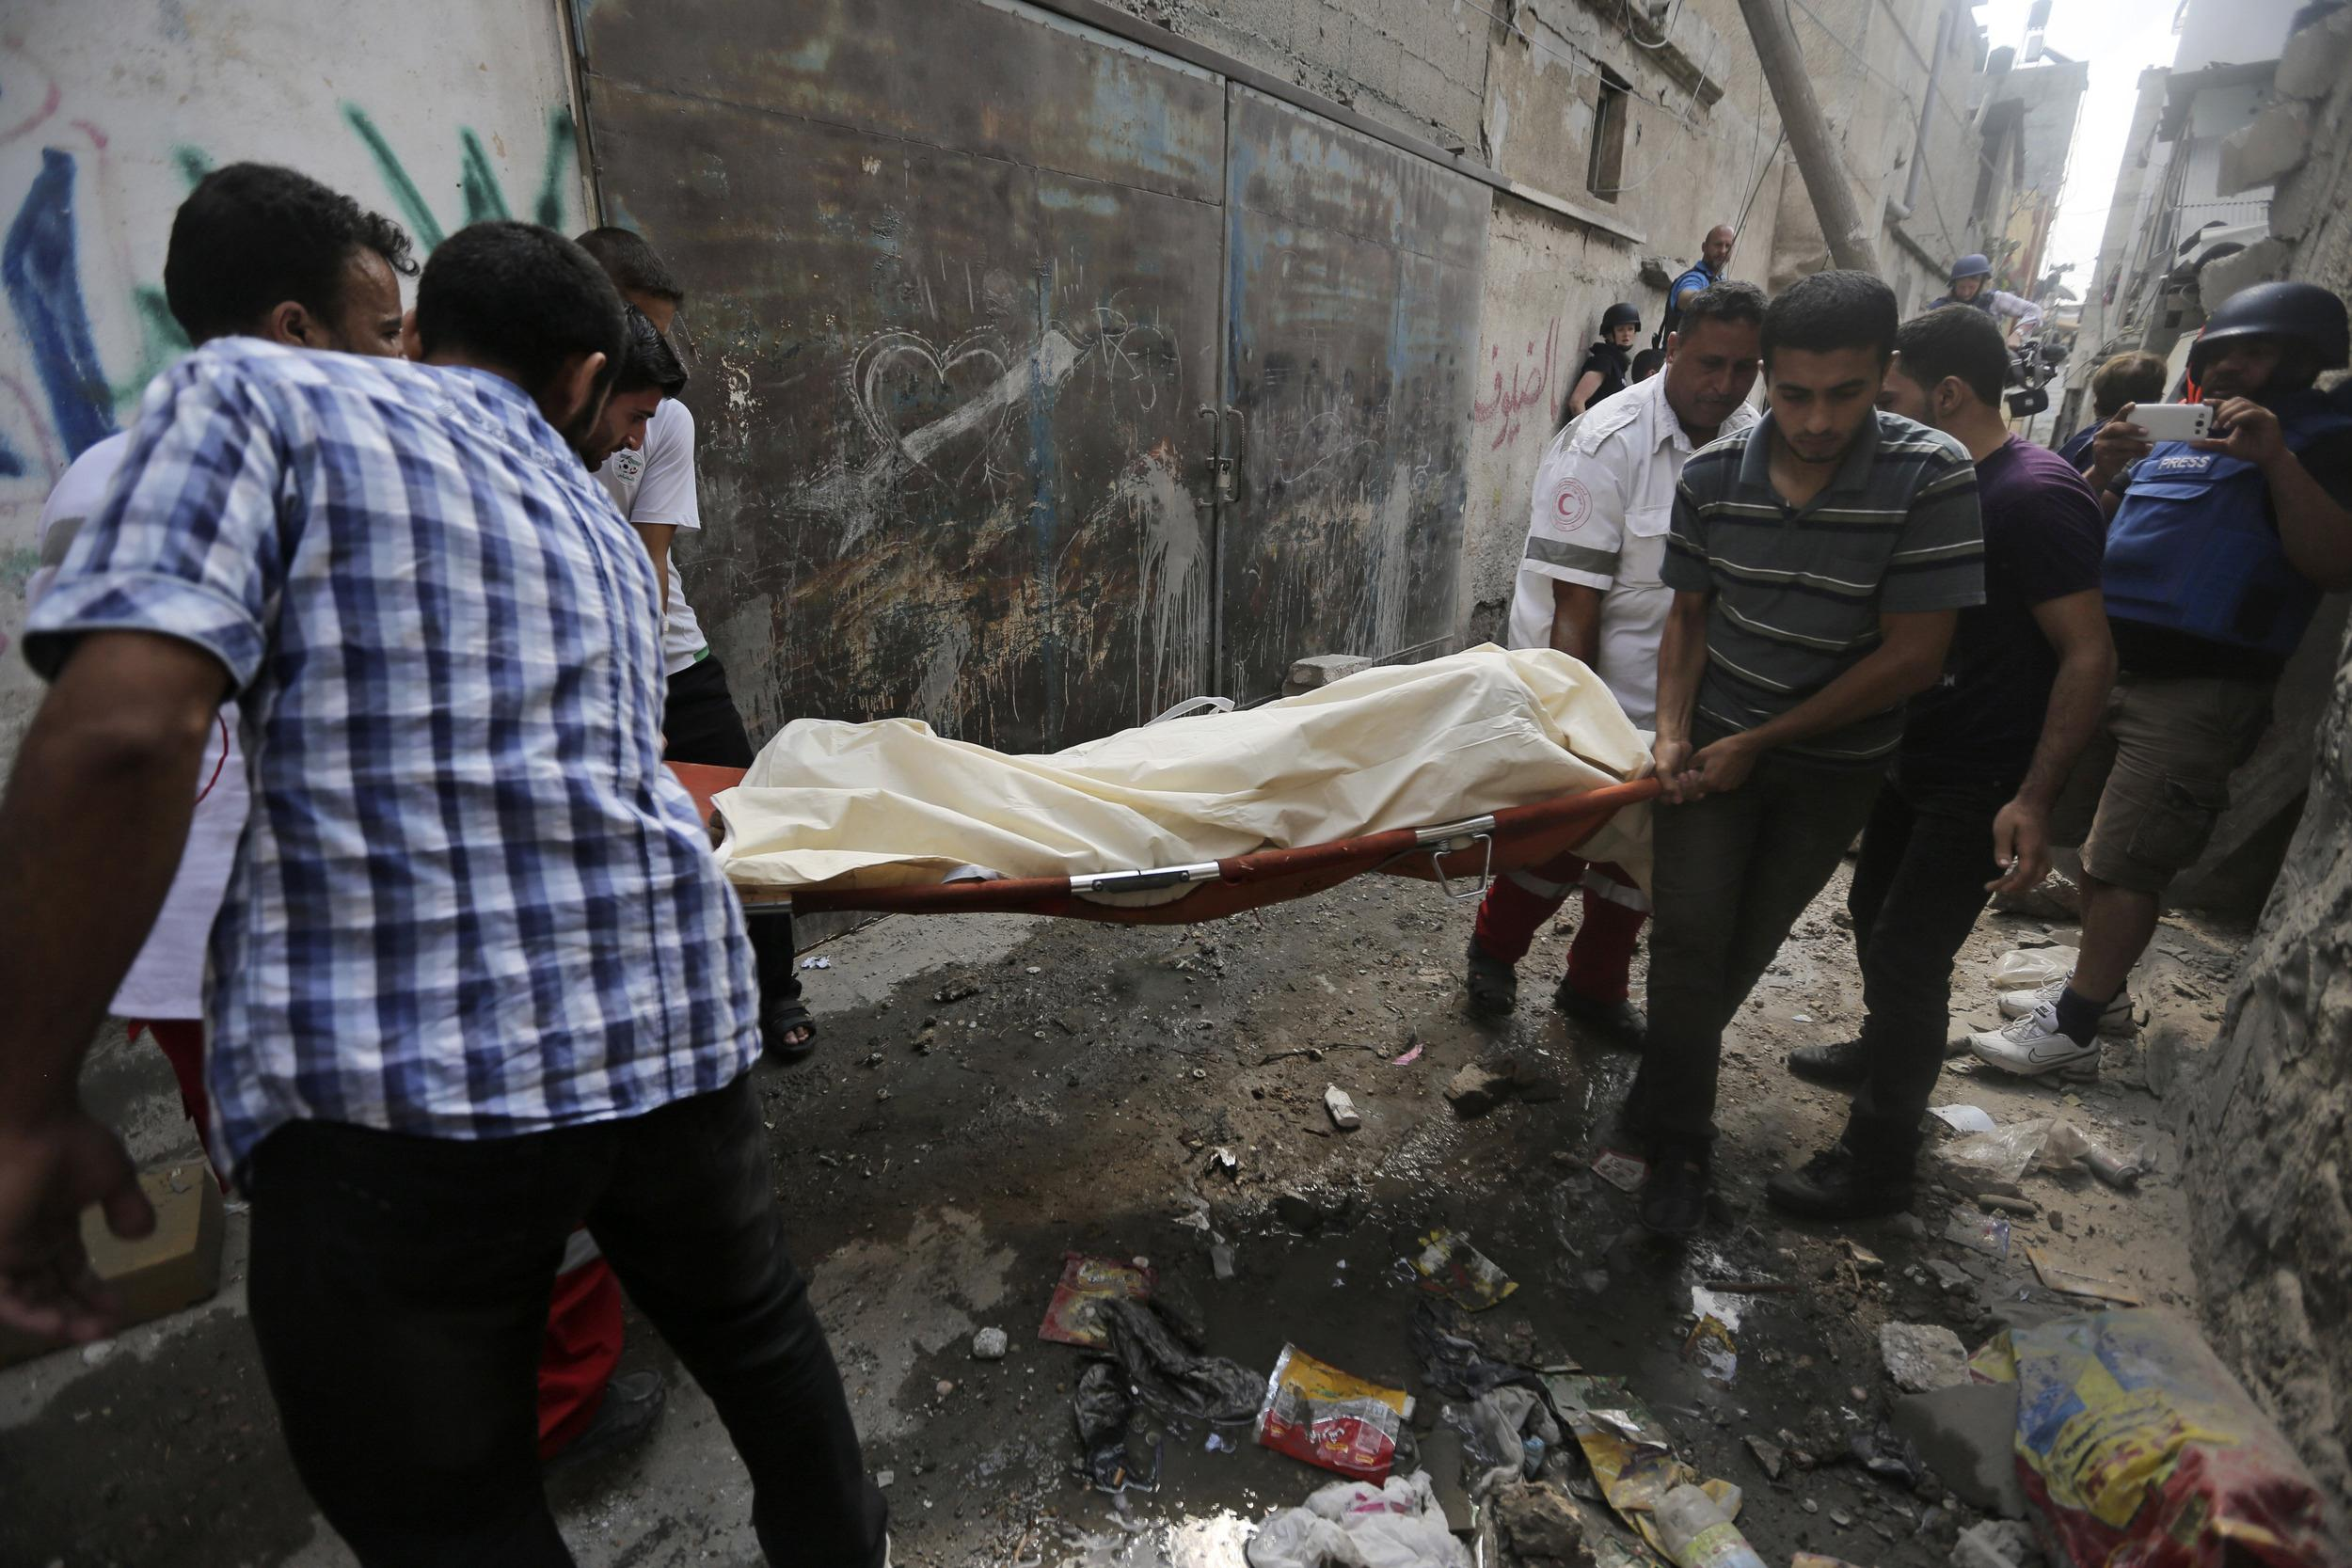 Image: Palestinians carry a dead body found in the rubble of a home destroyed by an Israeli strike in Gaza City on Sunday